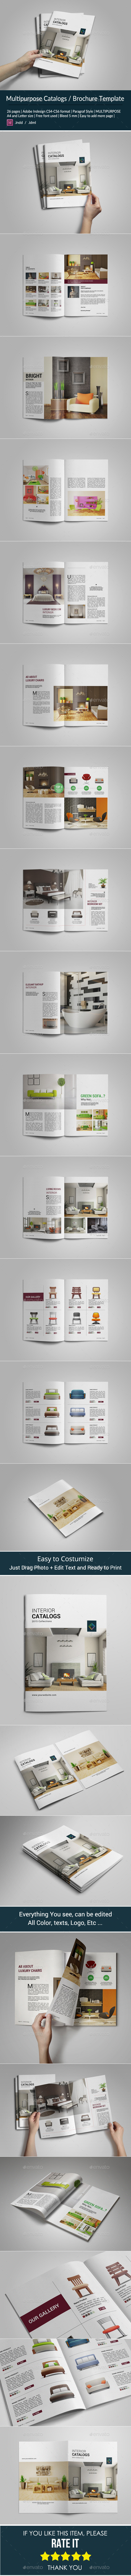 GraphicRiver Multipurpose Catalogs Brochure 9727534